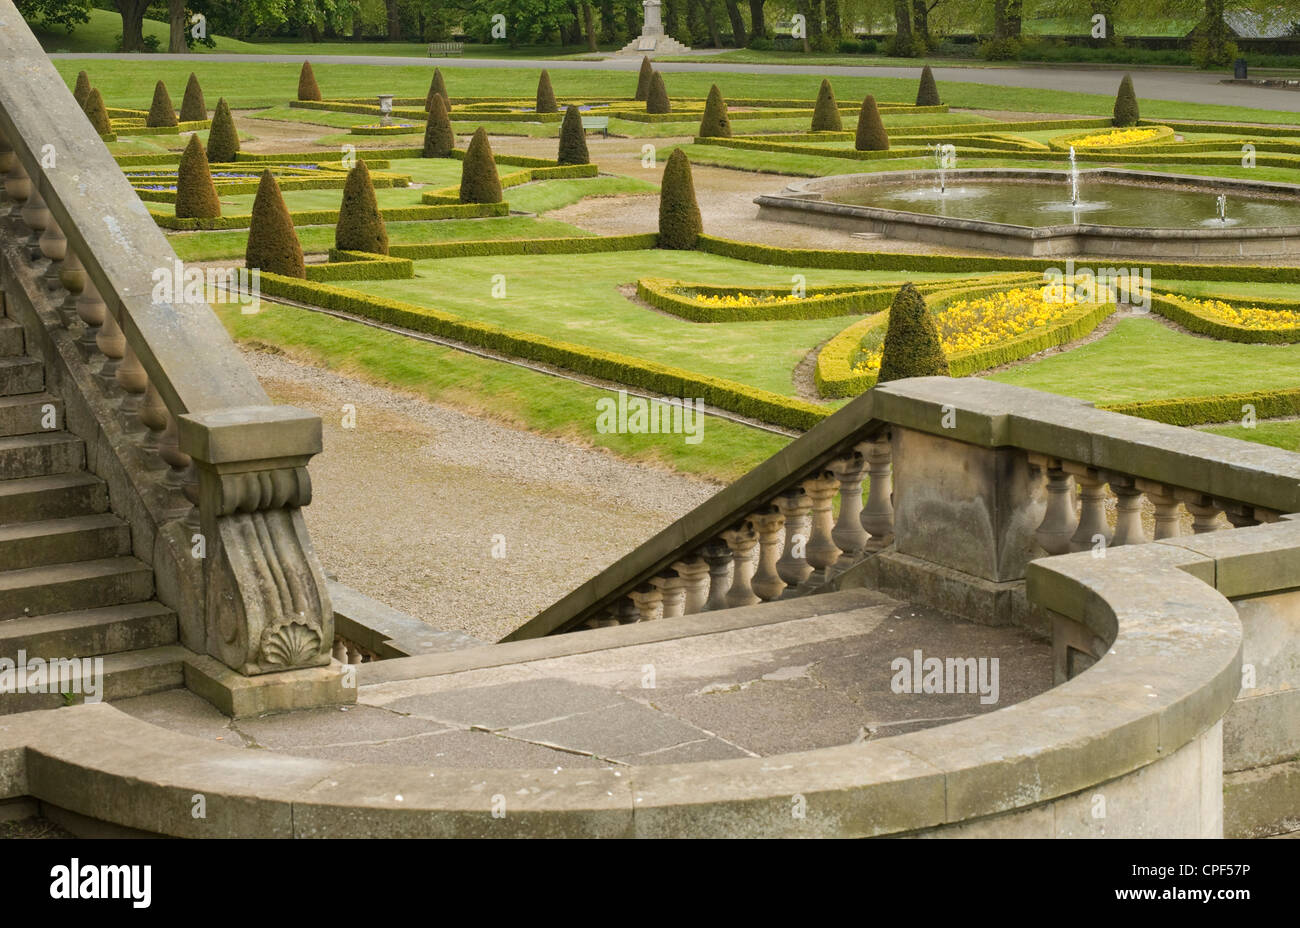 Formal gardens at Bowes Museum in Barnard Castle, County Durham - Stock Image